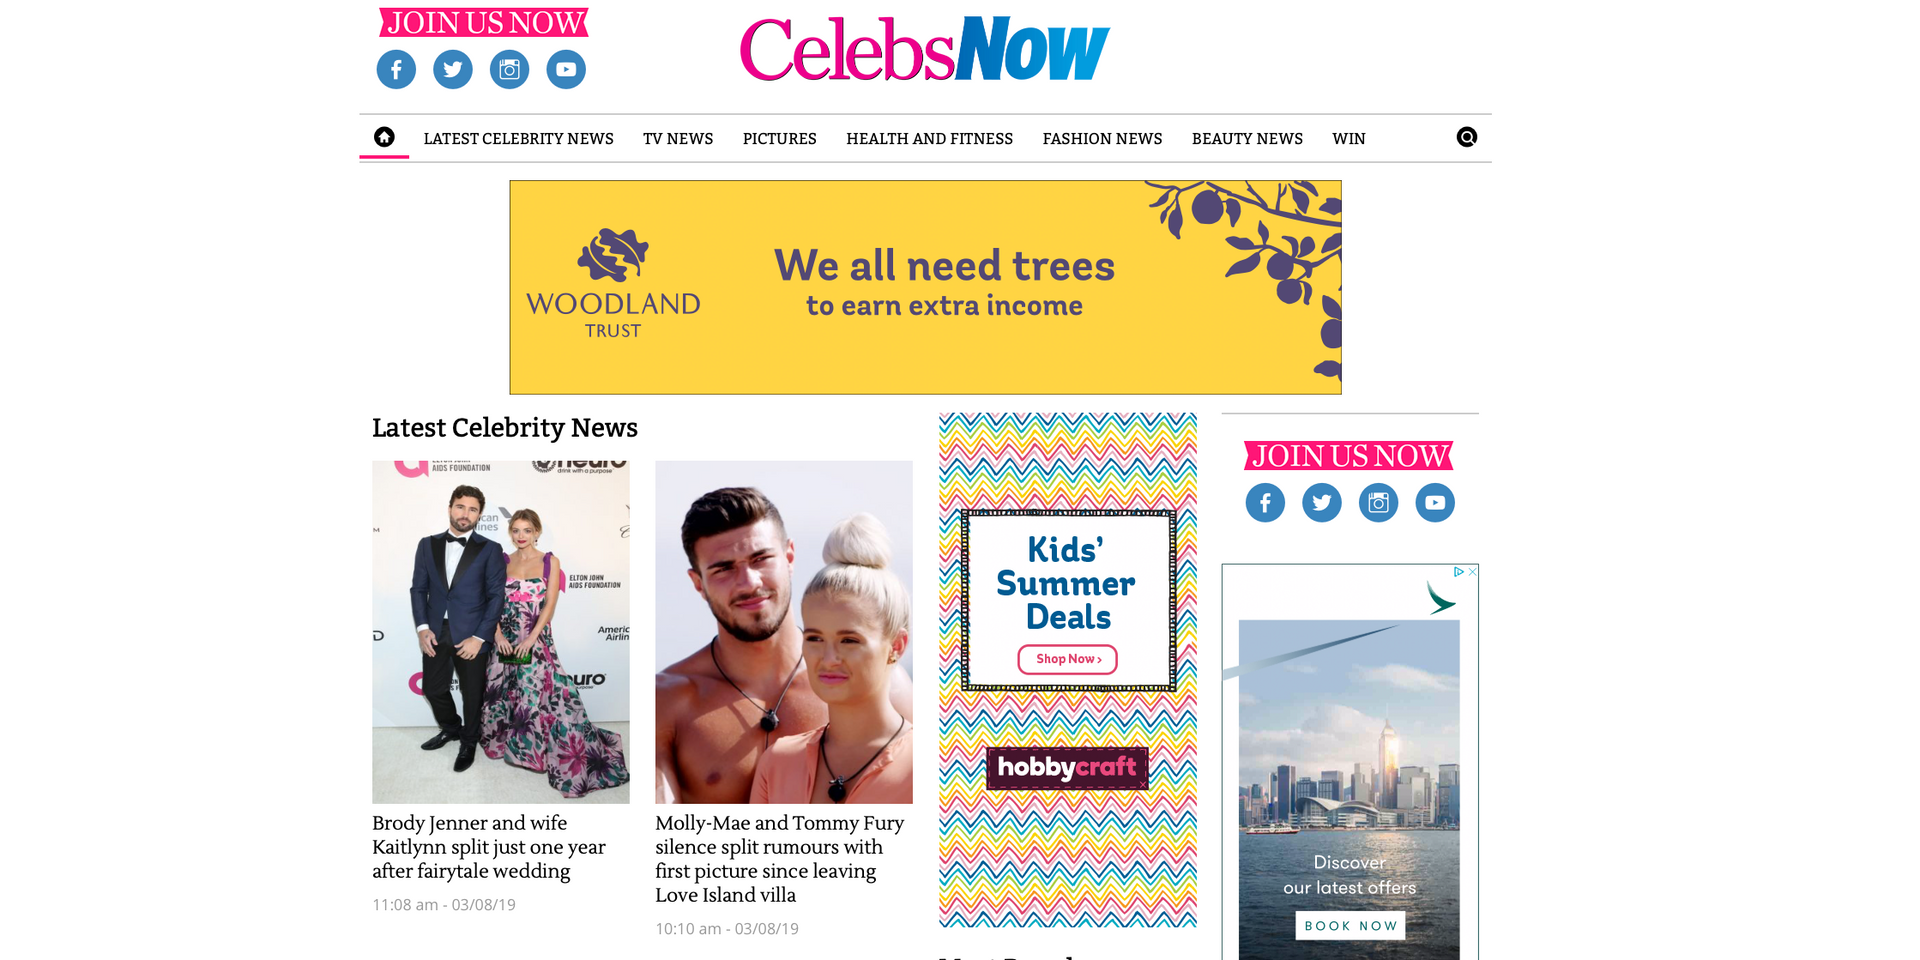 Daily CelebsNow news stories, CelebsNow